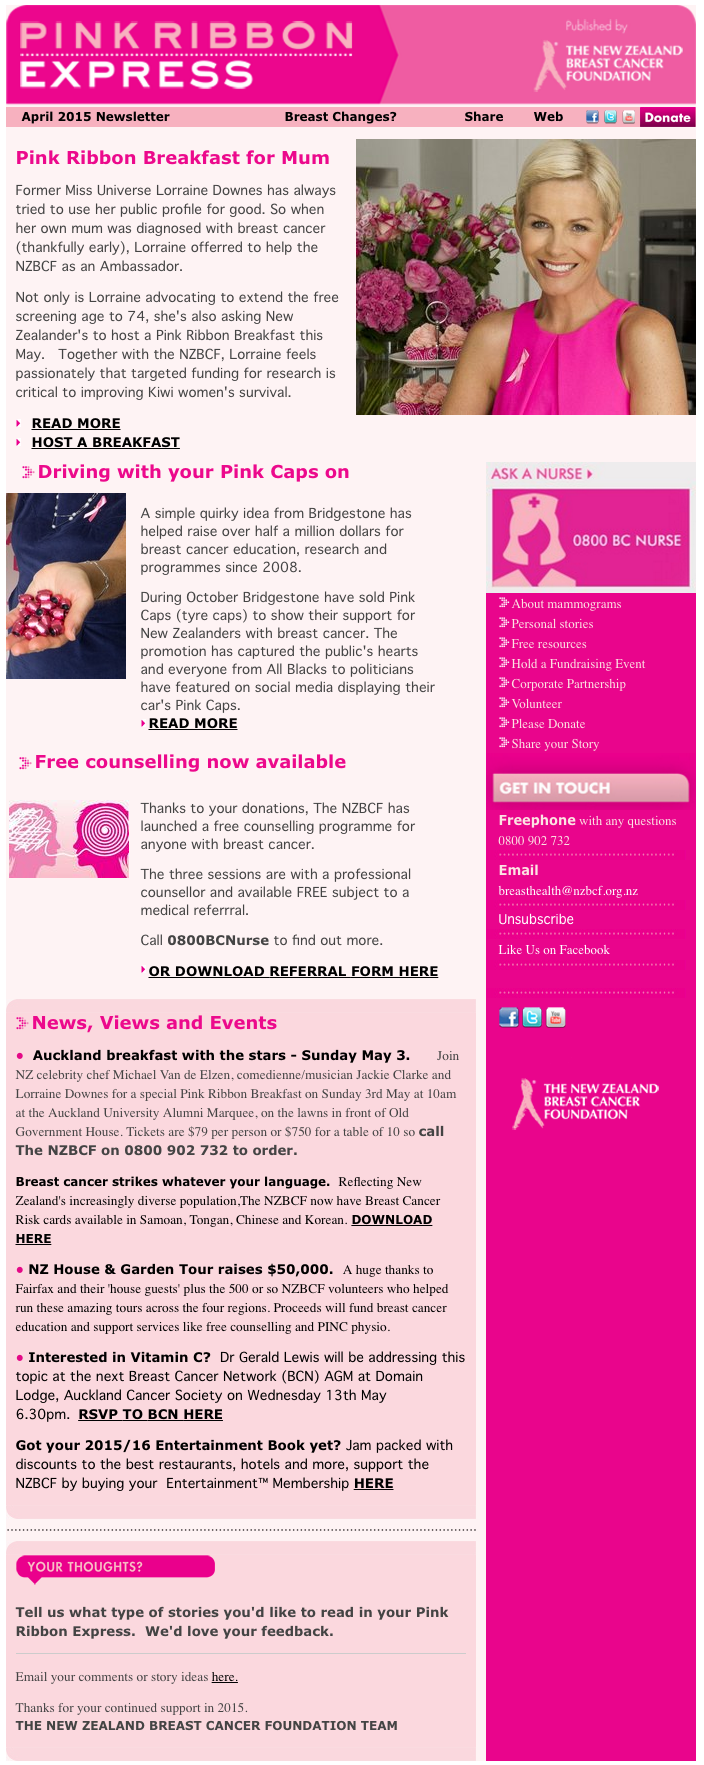 screencapture-nzbcf-org-nz-NEWS-NEWSLETTER-PinkRibbonExpress-PinkRibbonExpress-April2015-aspx-1492564801261.png